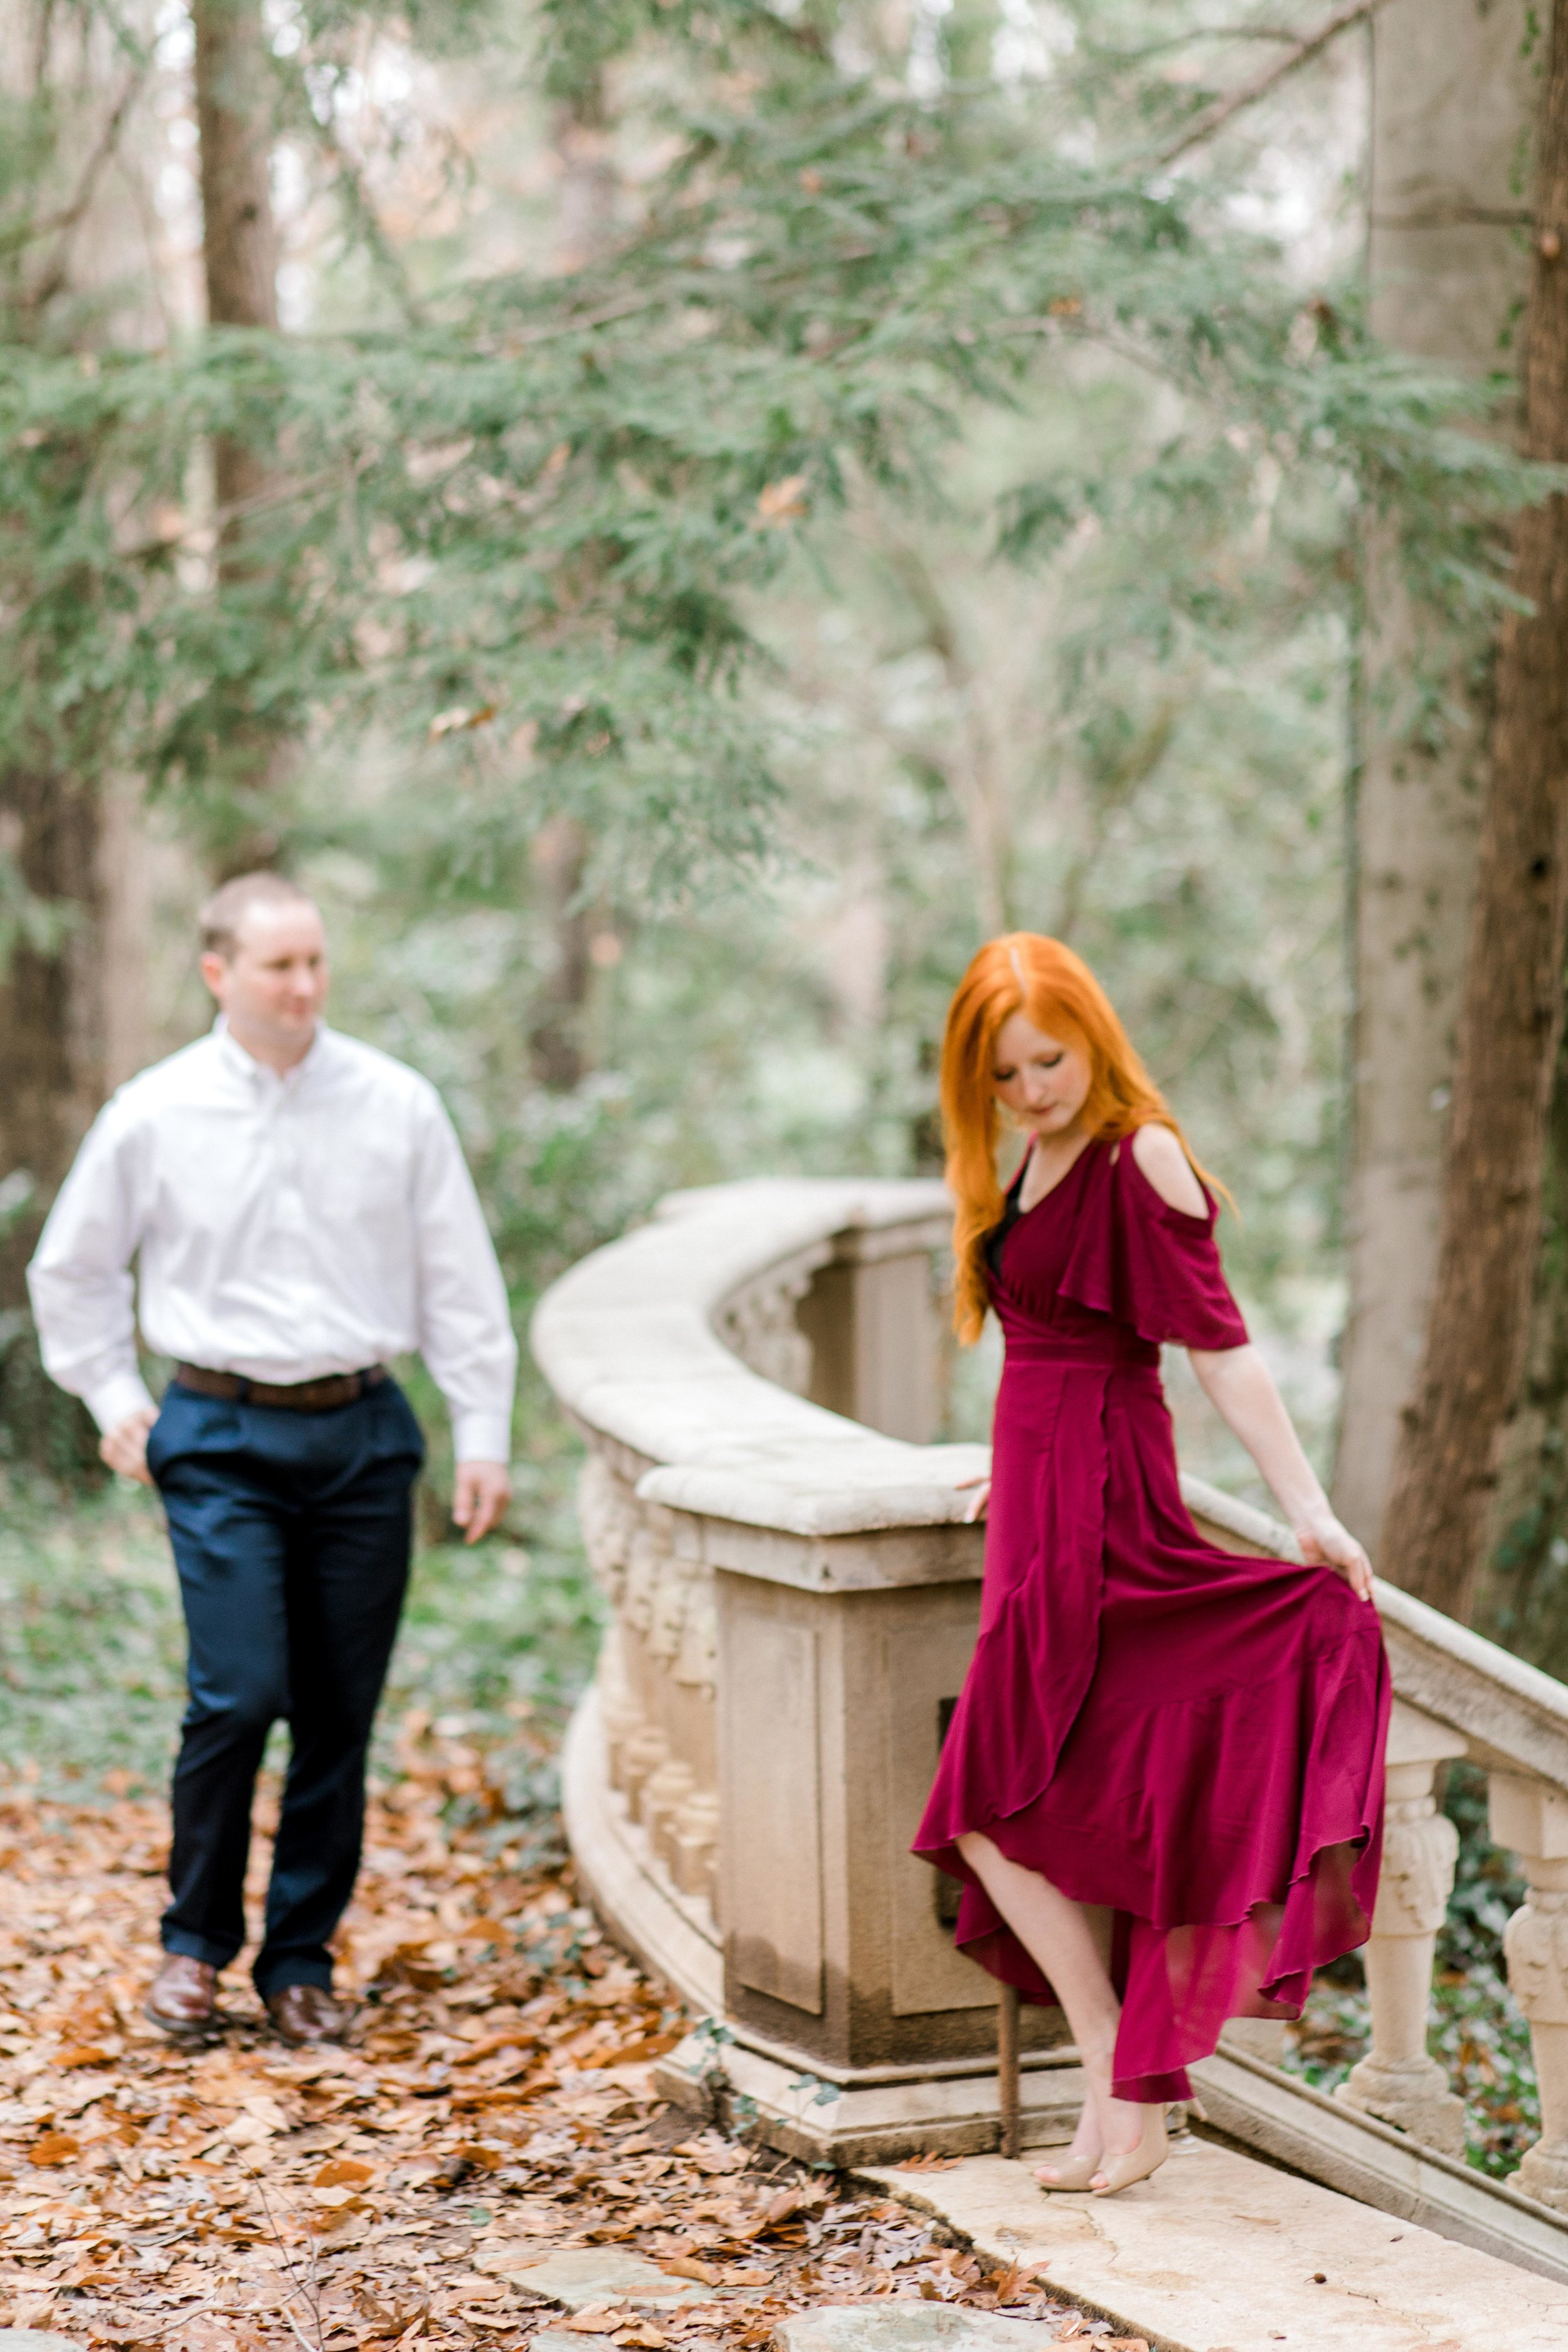 engagment cator woolford garden atlanta darian reilly photography-28.jpg